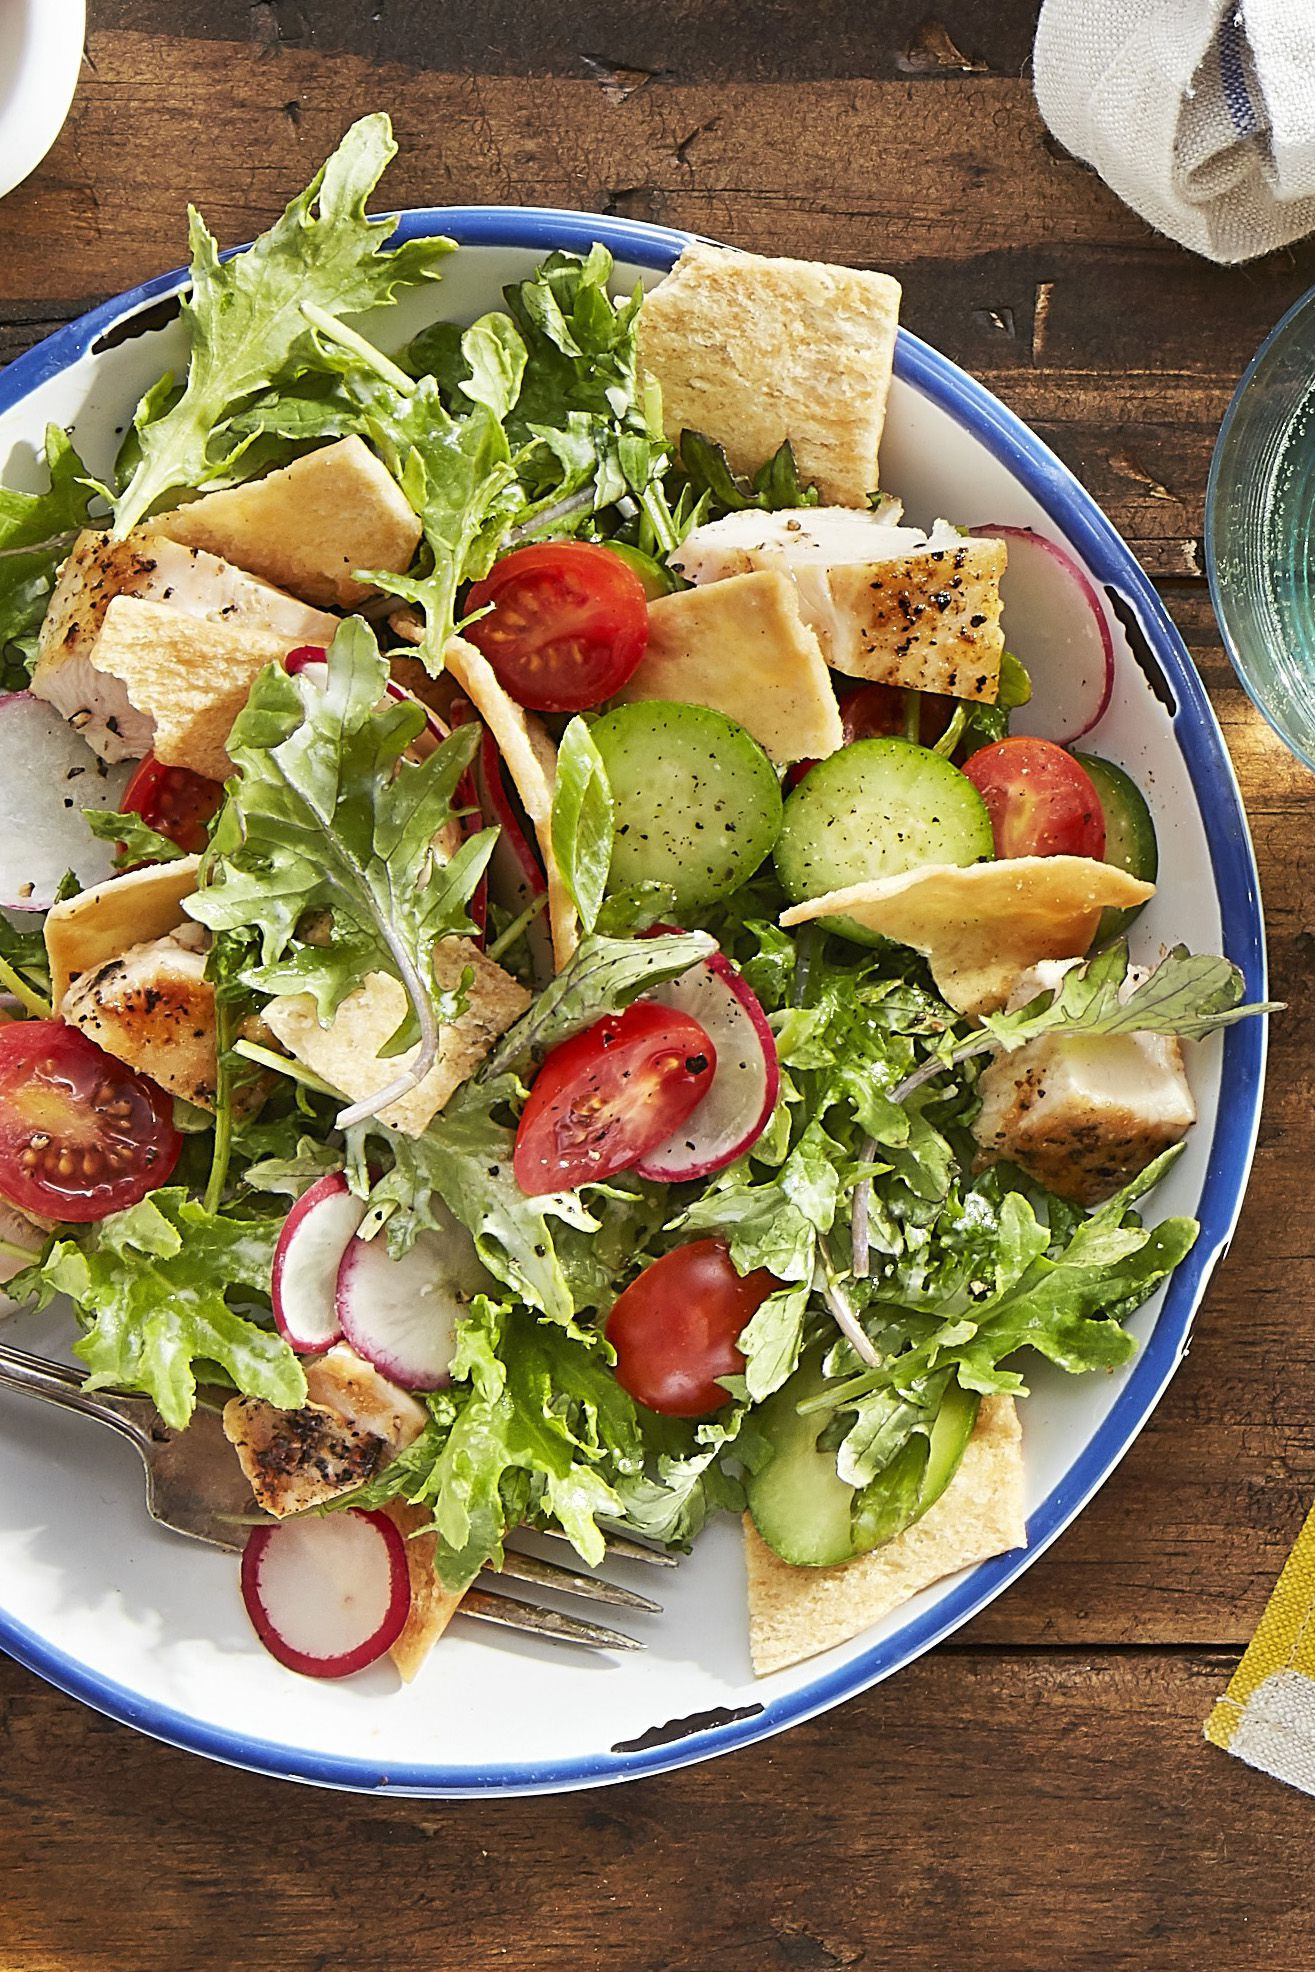 Salad with chicken, cale and pita